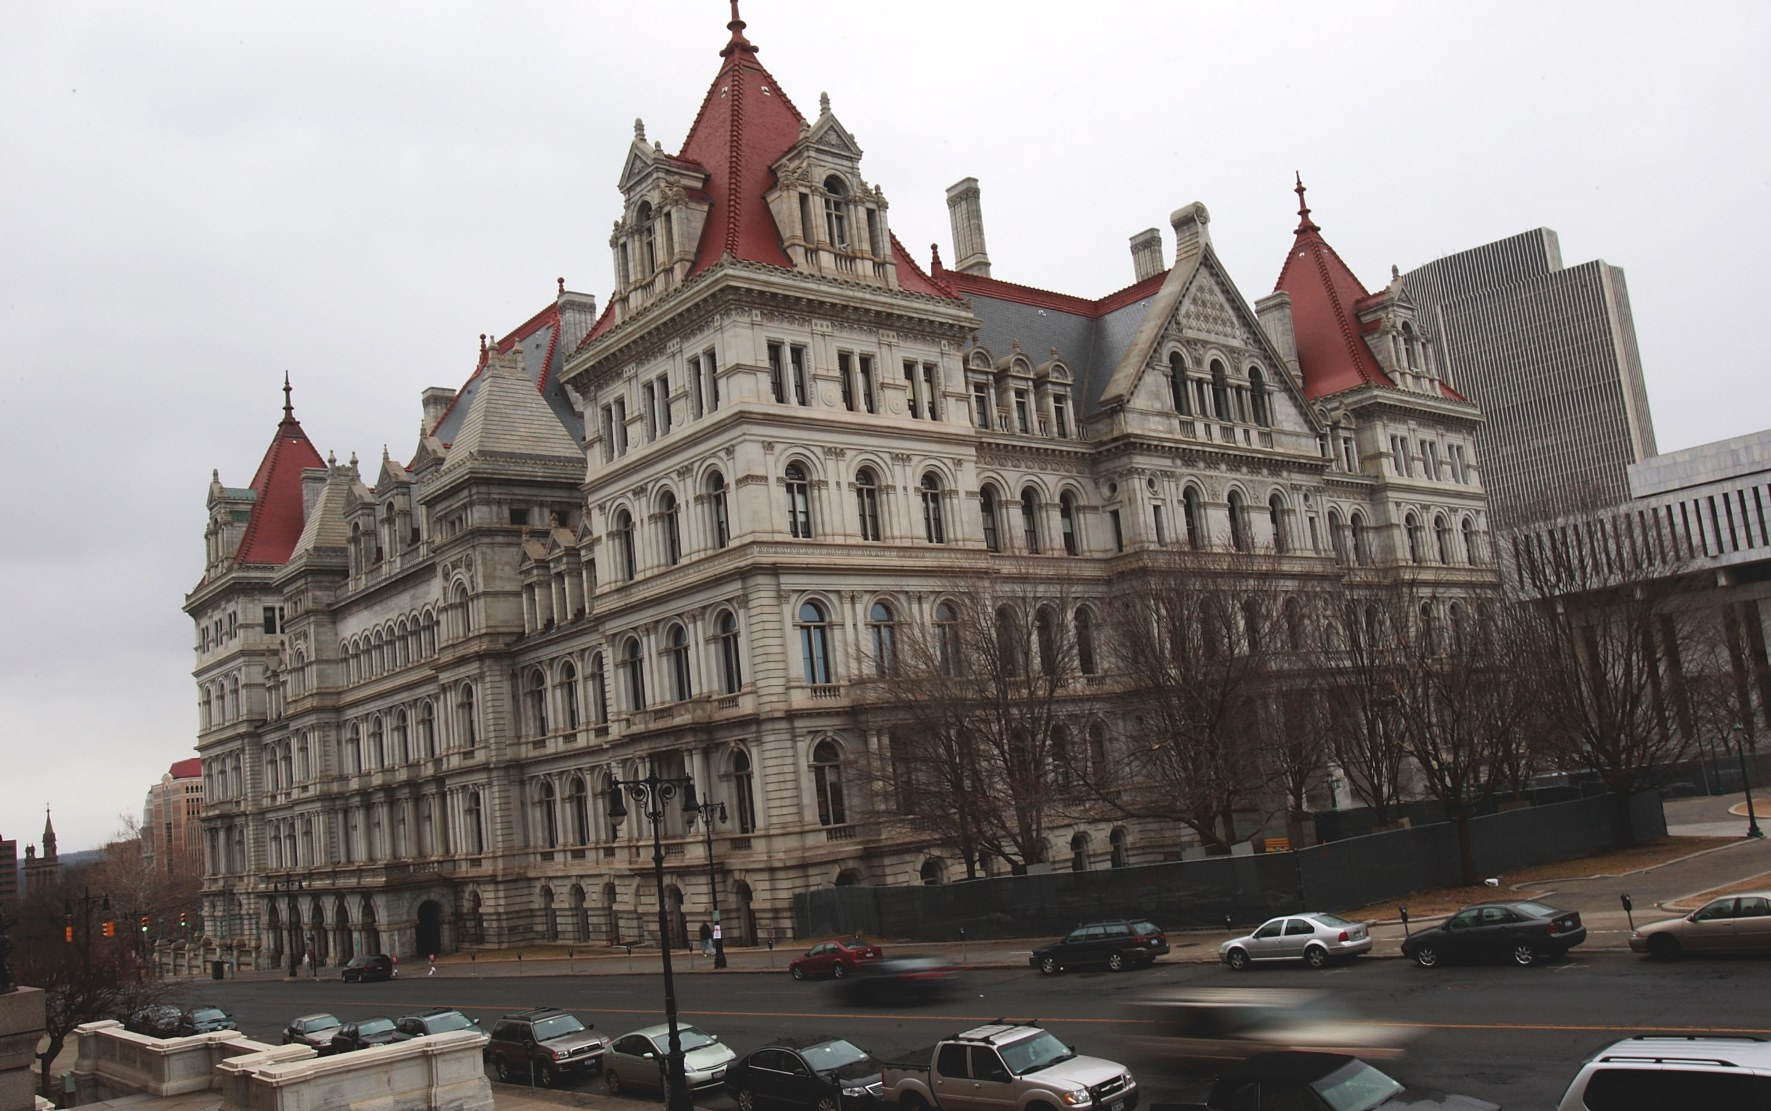 The new state budget avoids tax increases and hikes education spending, but how does it deal with the $4.4 billion budget deficit? (Getty Images)